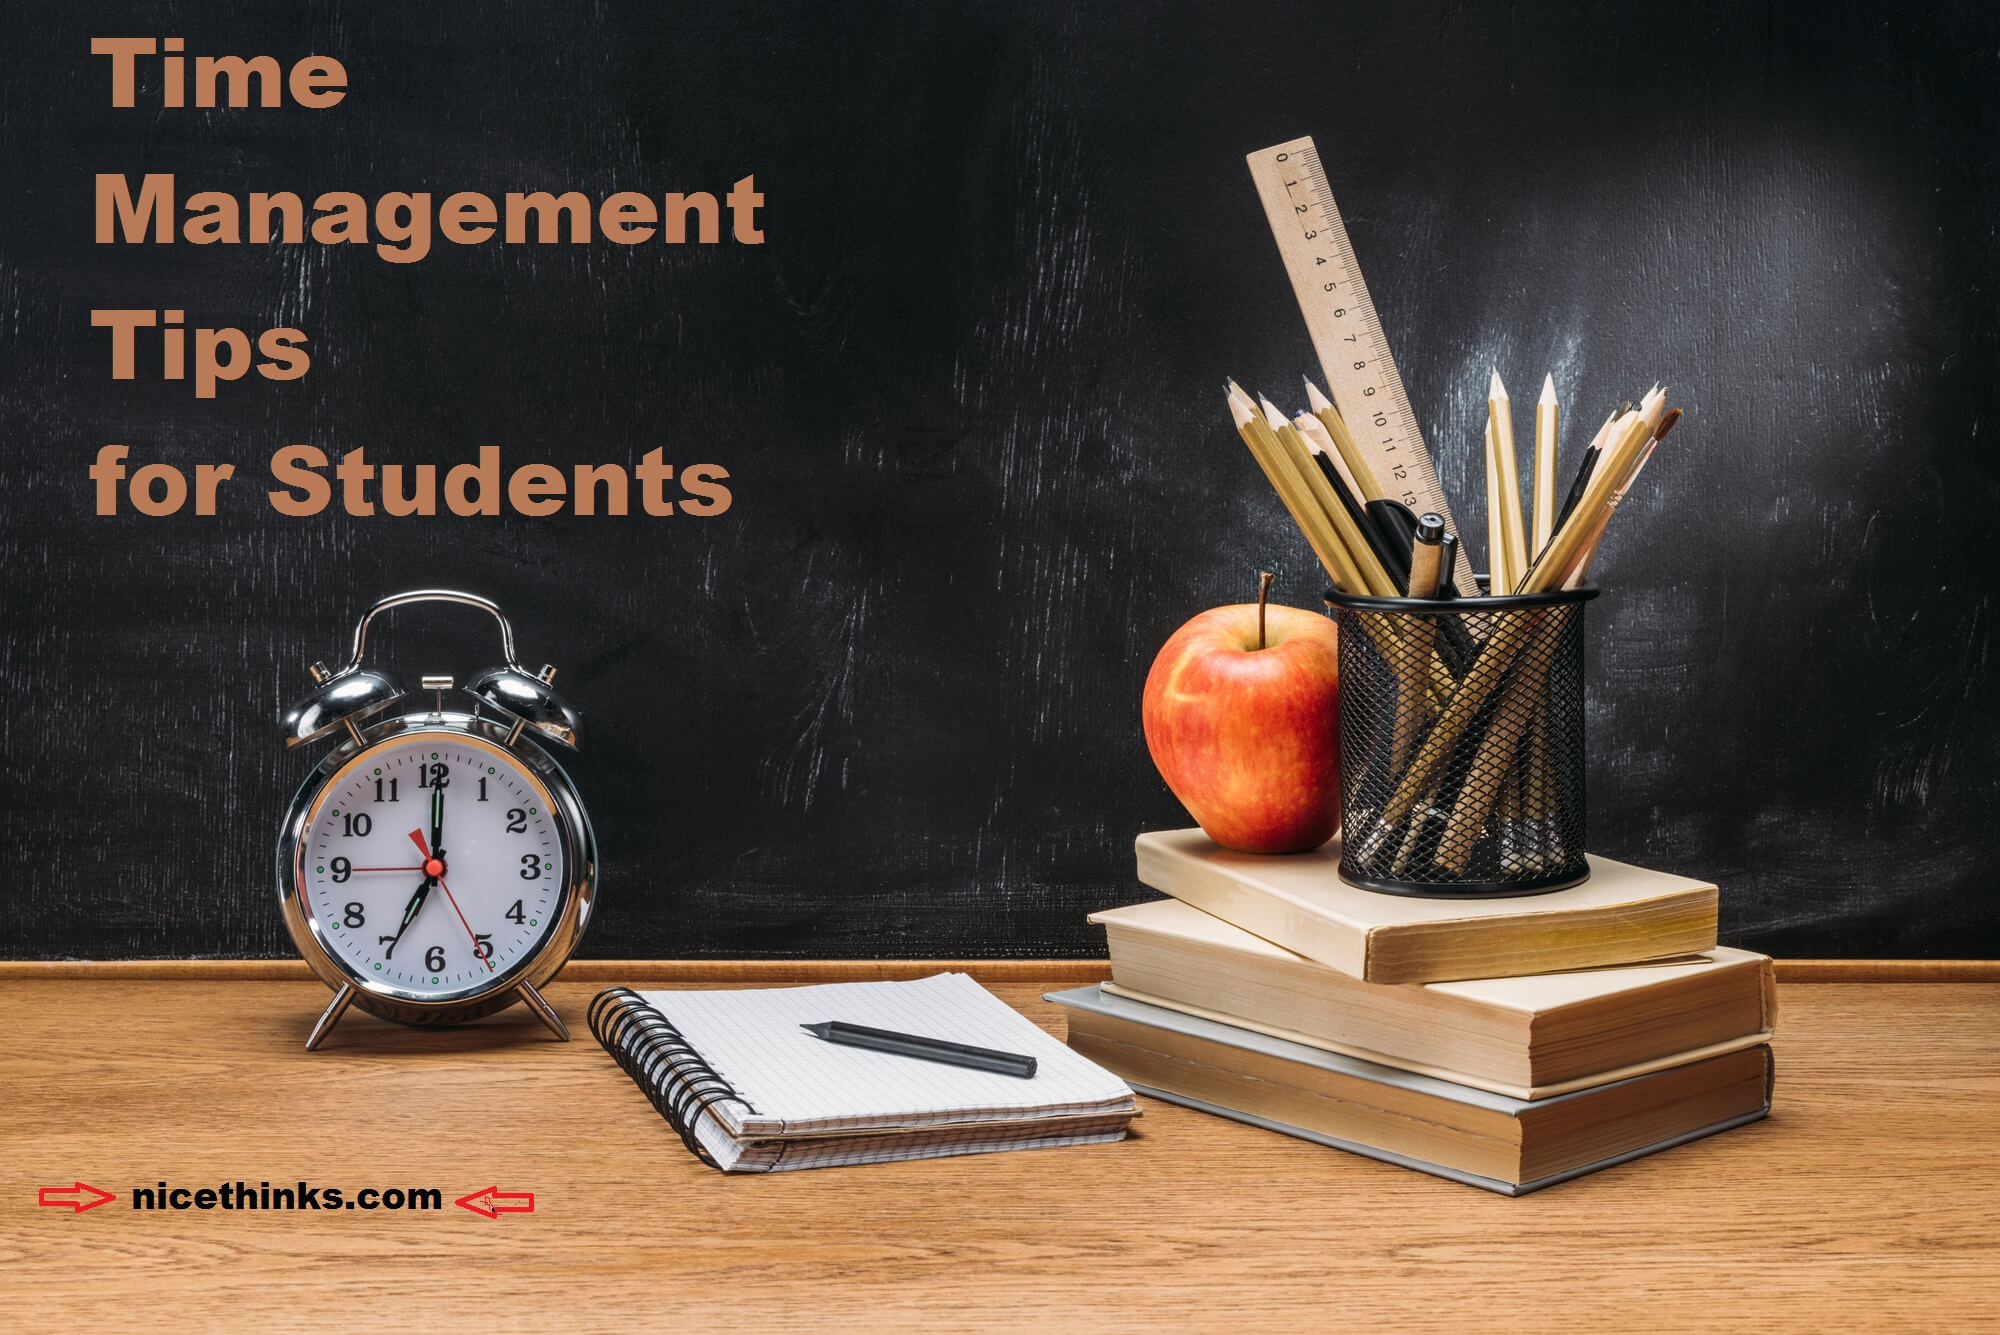 Time use in student life